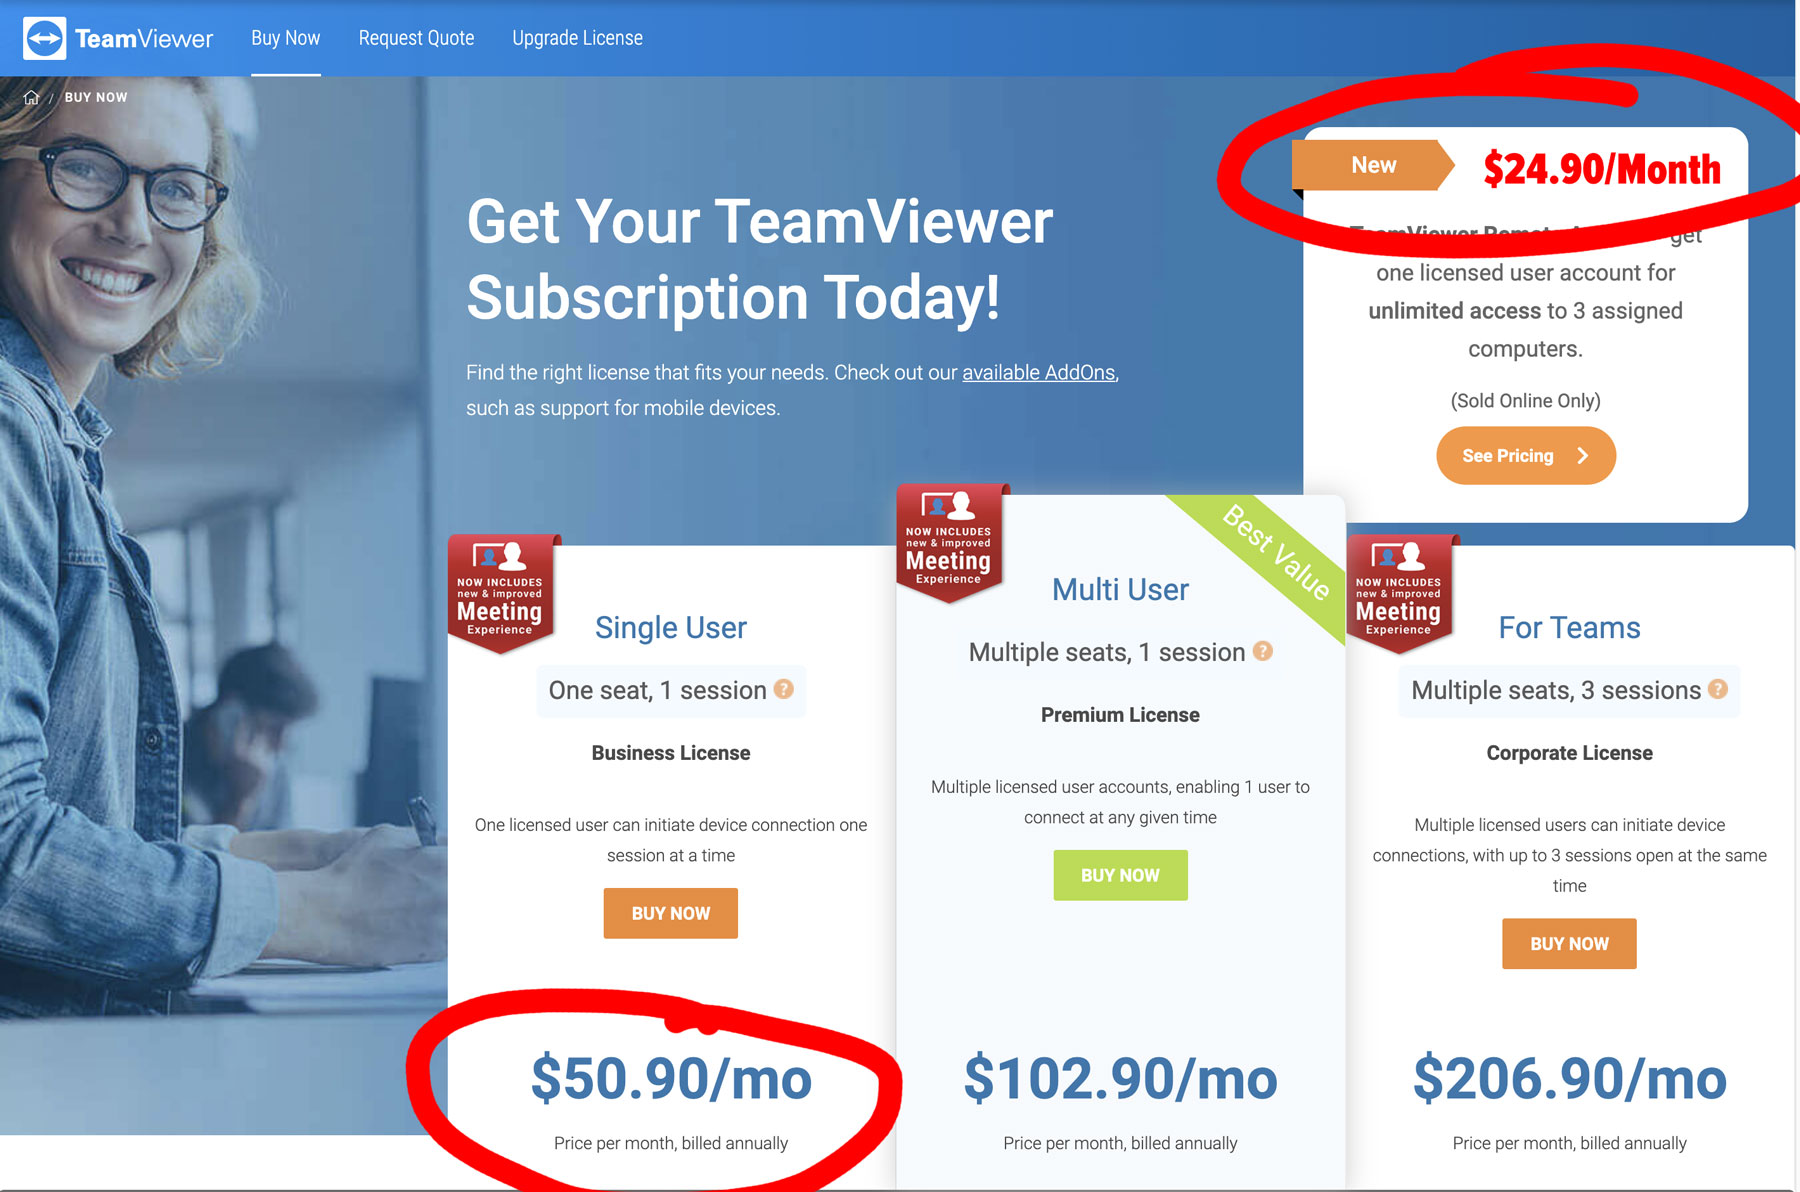 TeamViewer subscription pricing